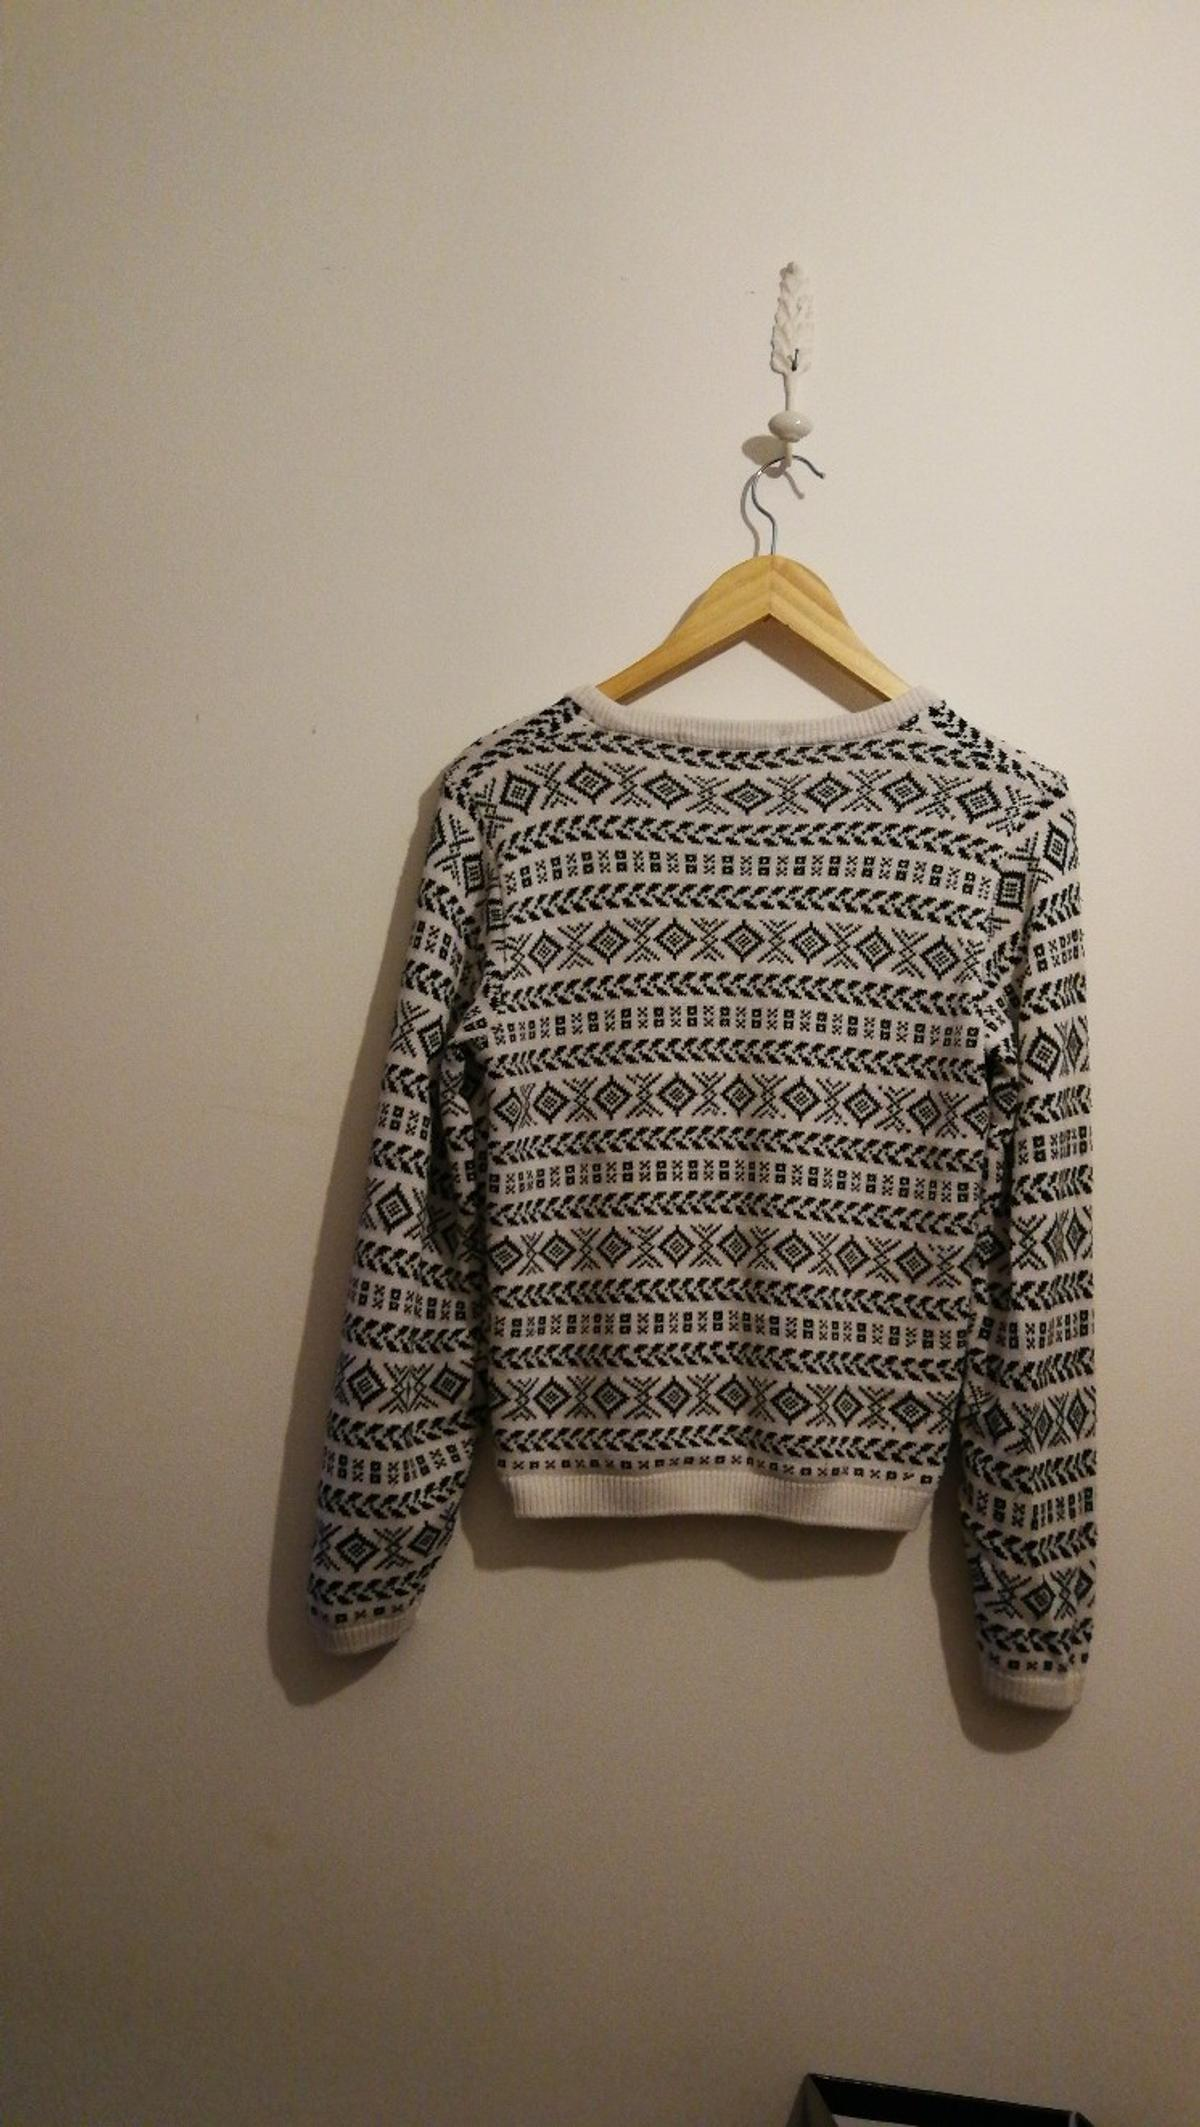 Wonderful vintage jumper from M&S.  Selling as too small.